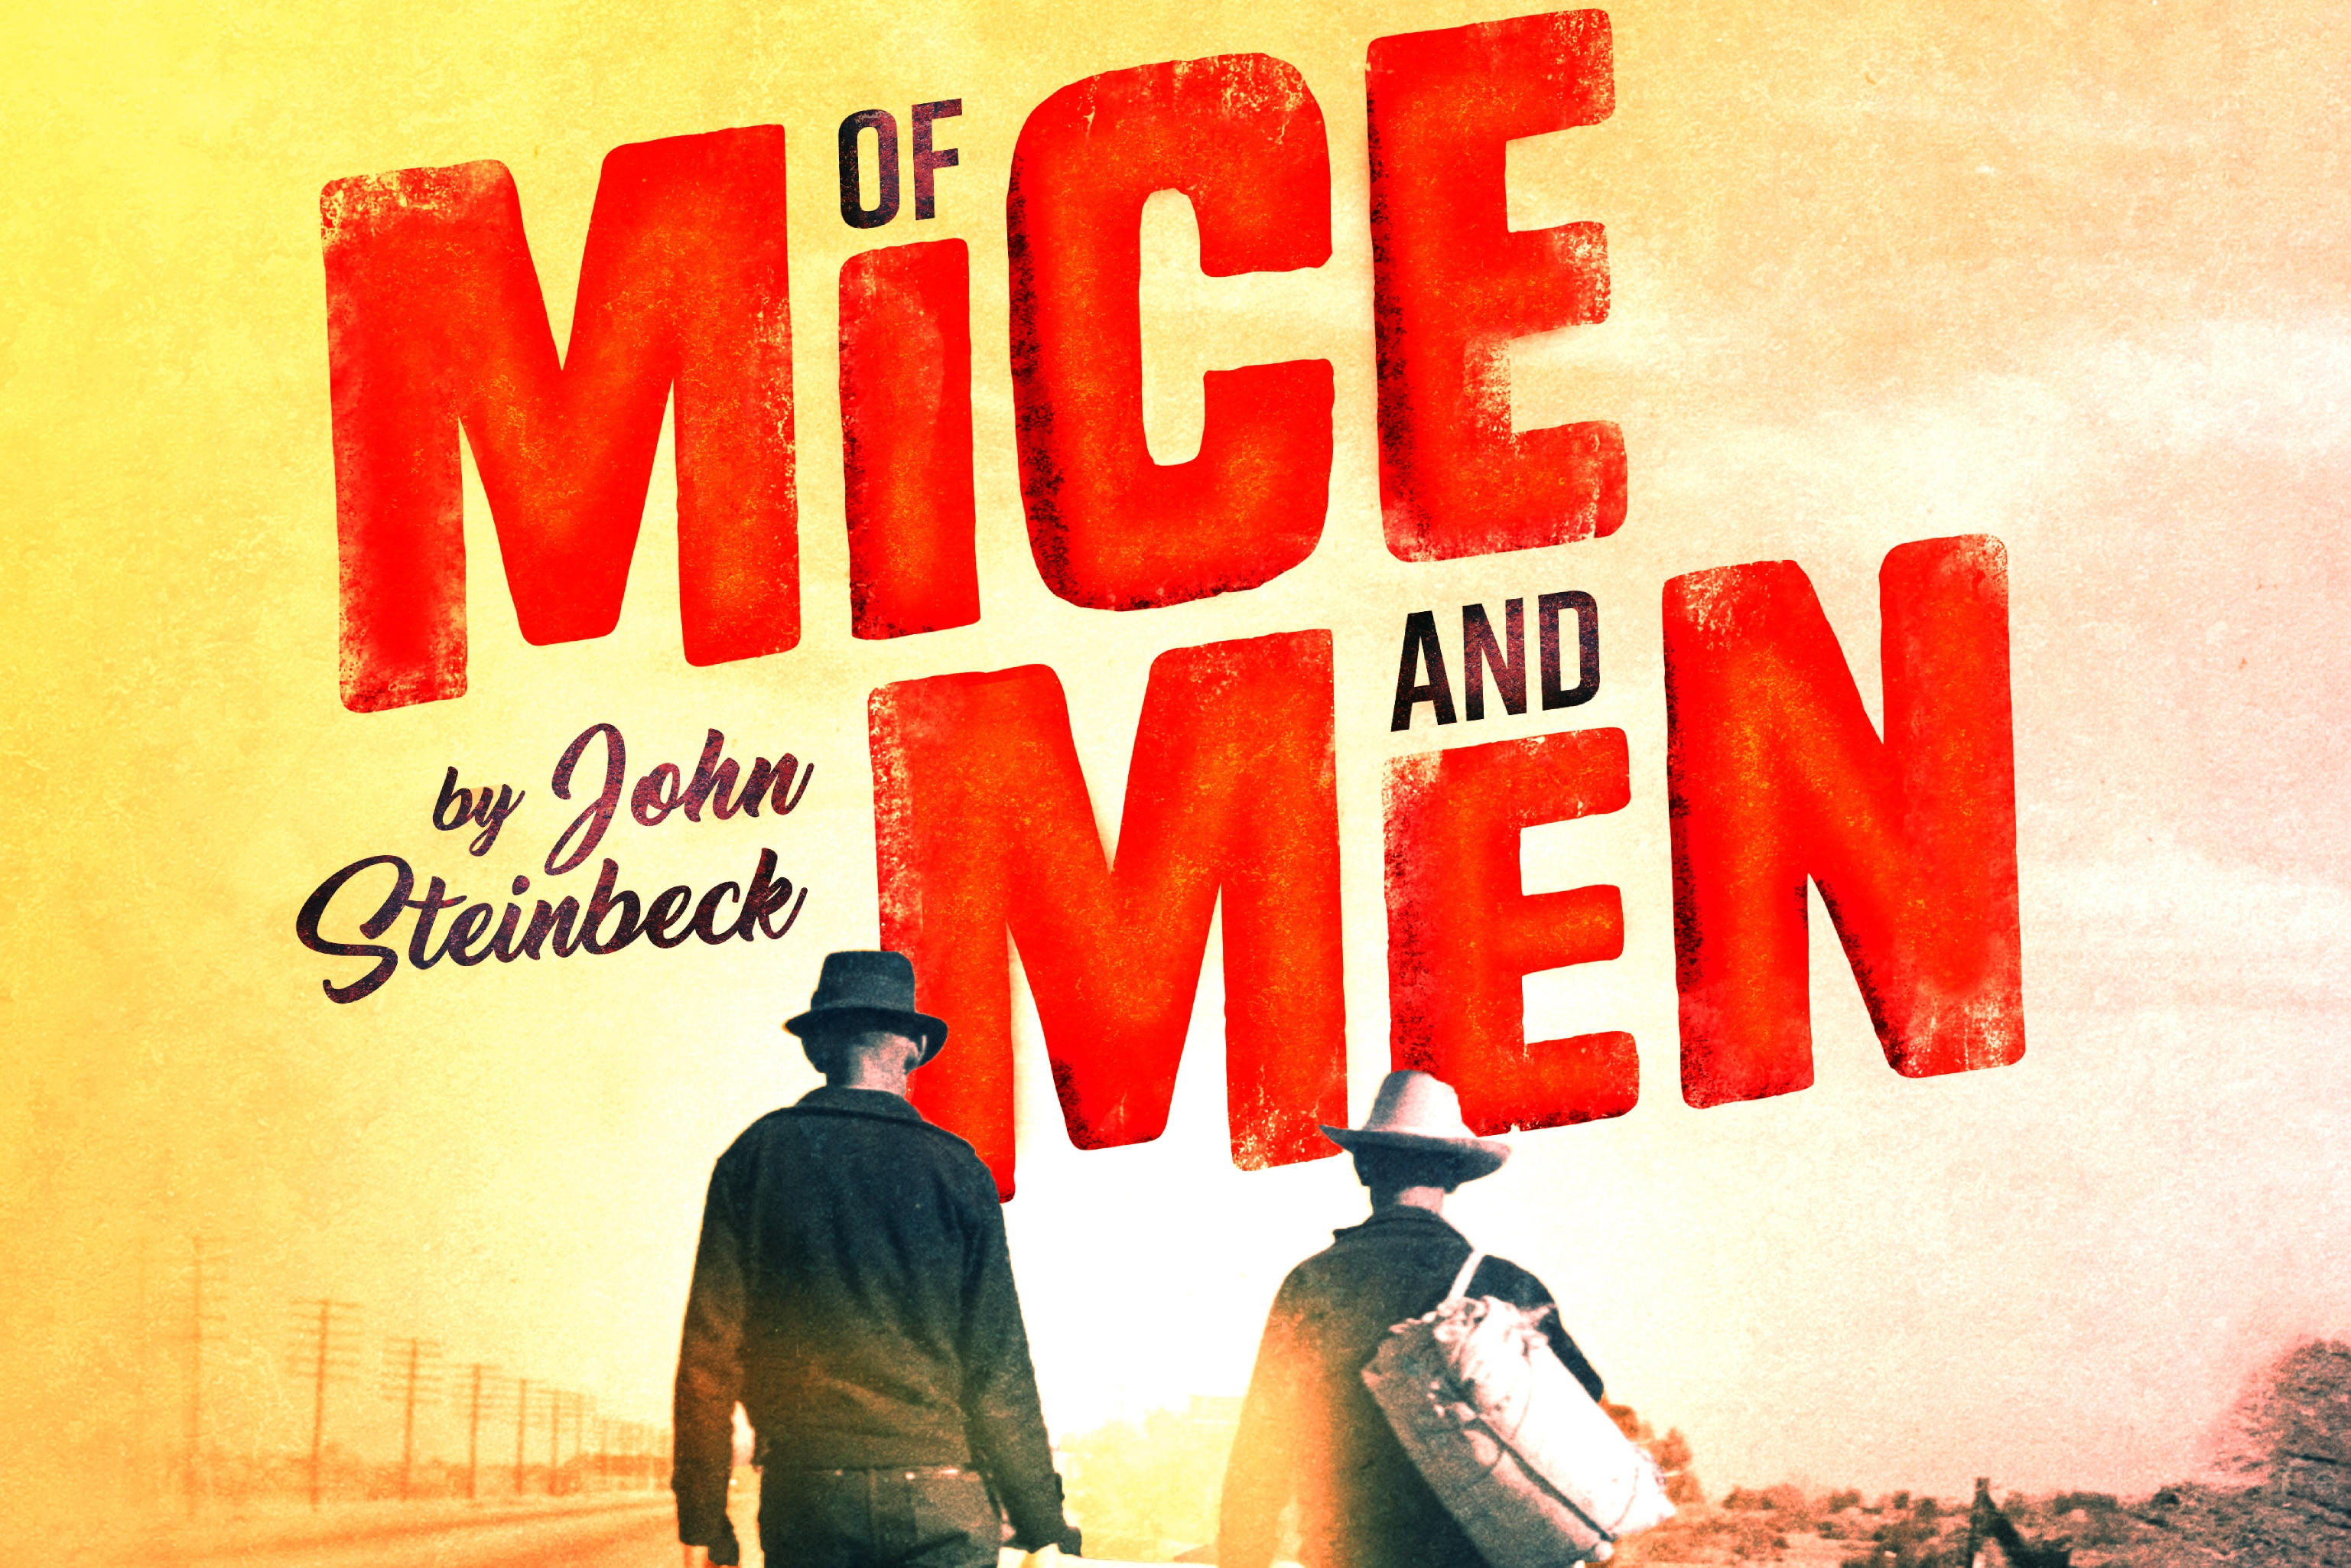 A review on mice and men written bye john steinbeck